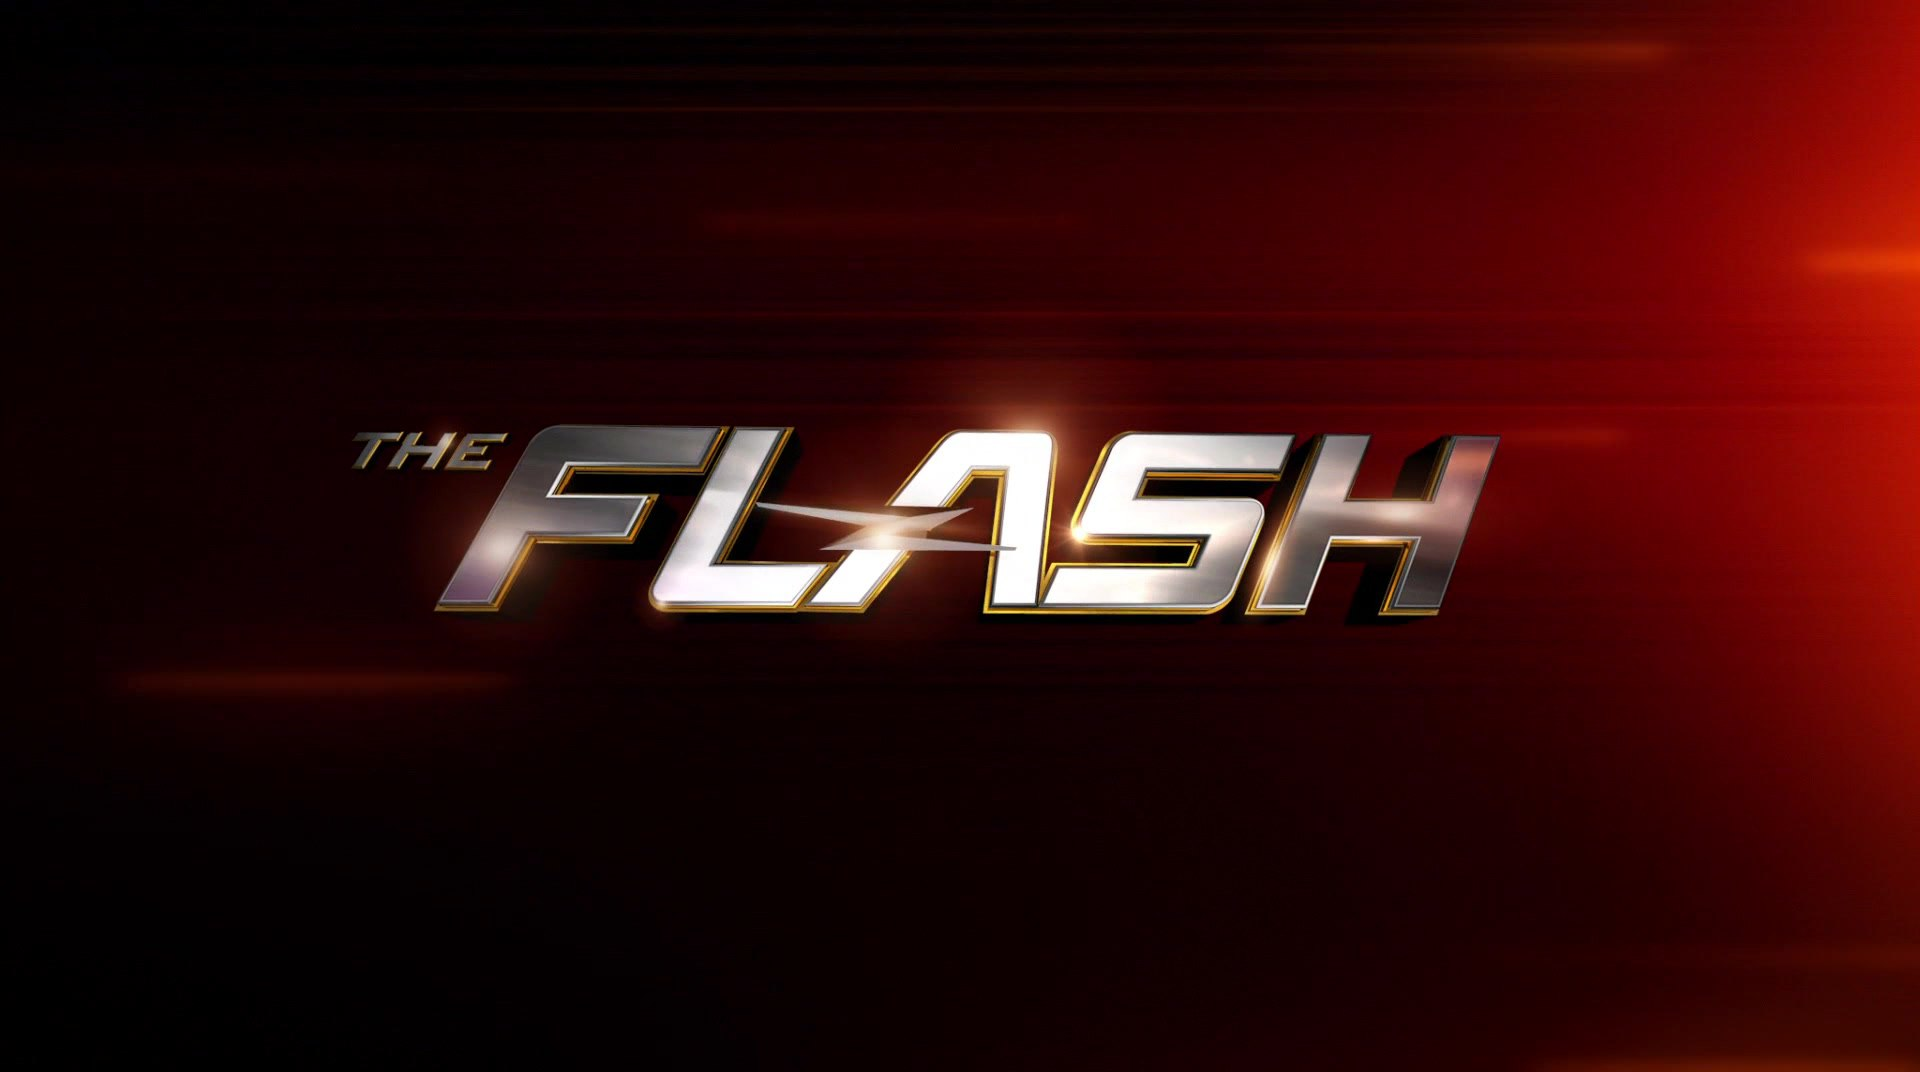 The Flash (2014 TV Series) Episode: The Flash & The Furious